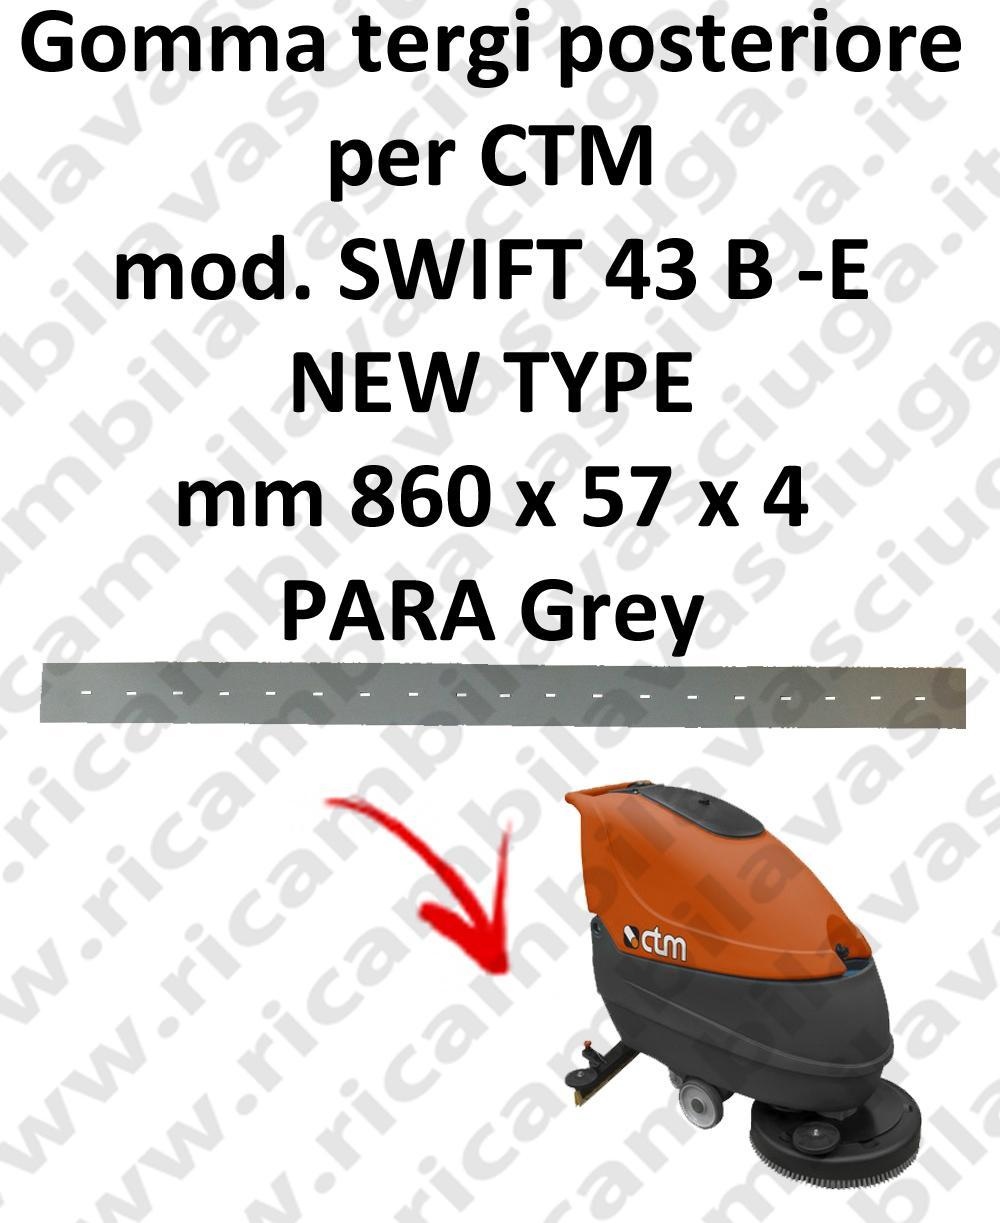 SWIFT 43 B - E new type squeegee rubber scrubber dryer back for CTM